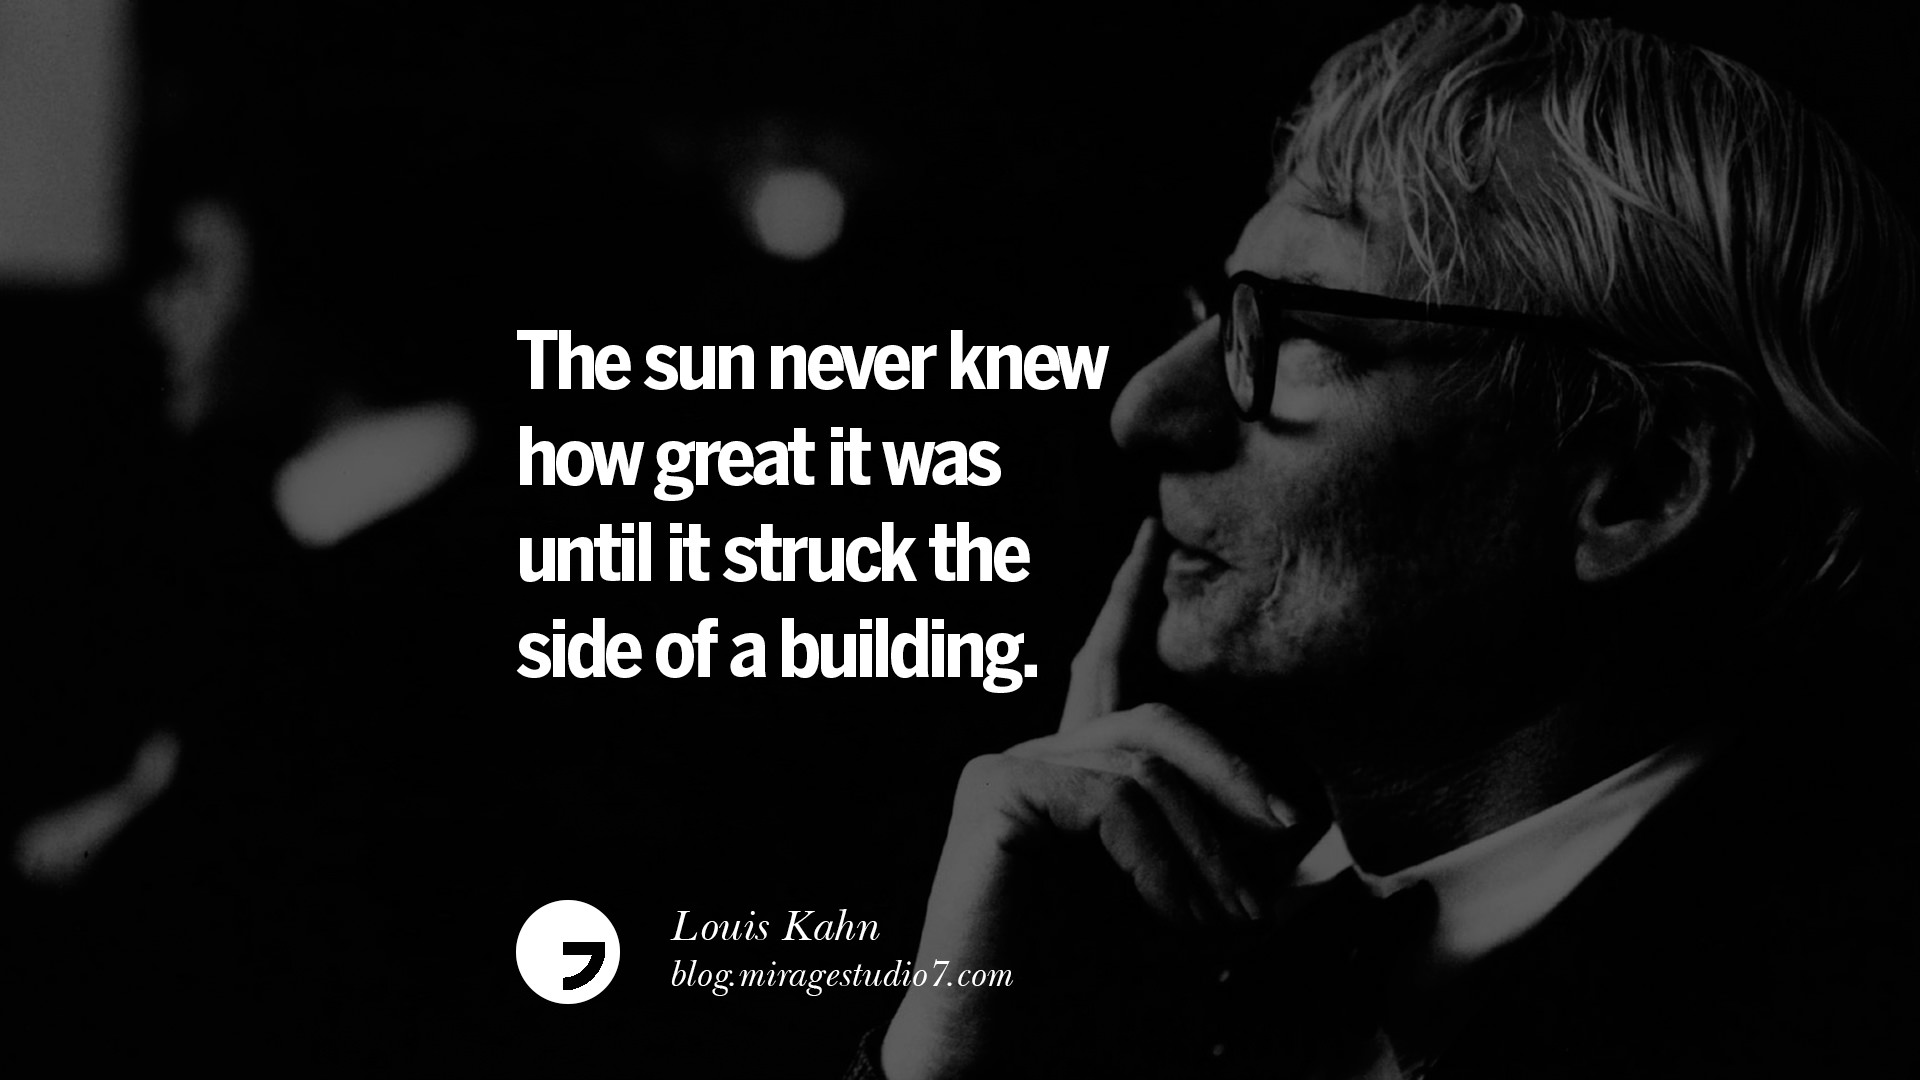 10 Quotes By Famous Architects On Architecture | miragestudio7 2018